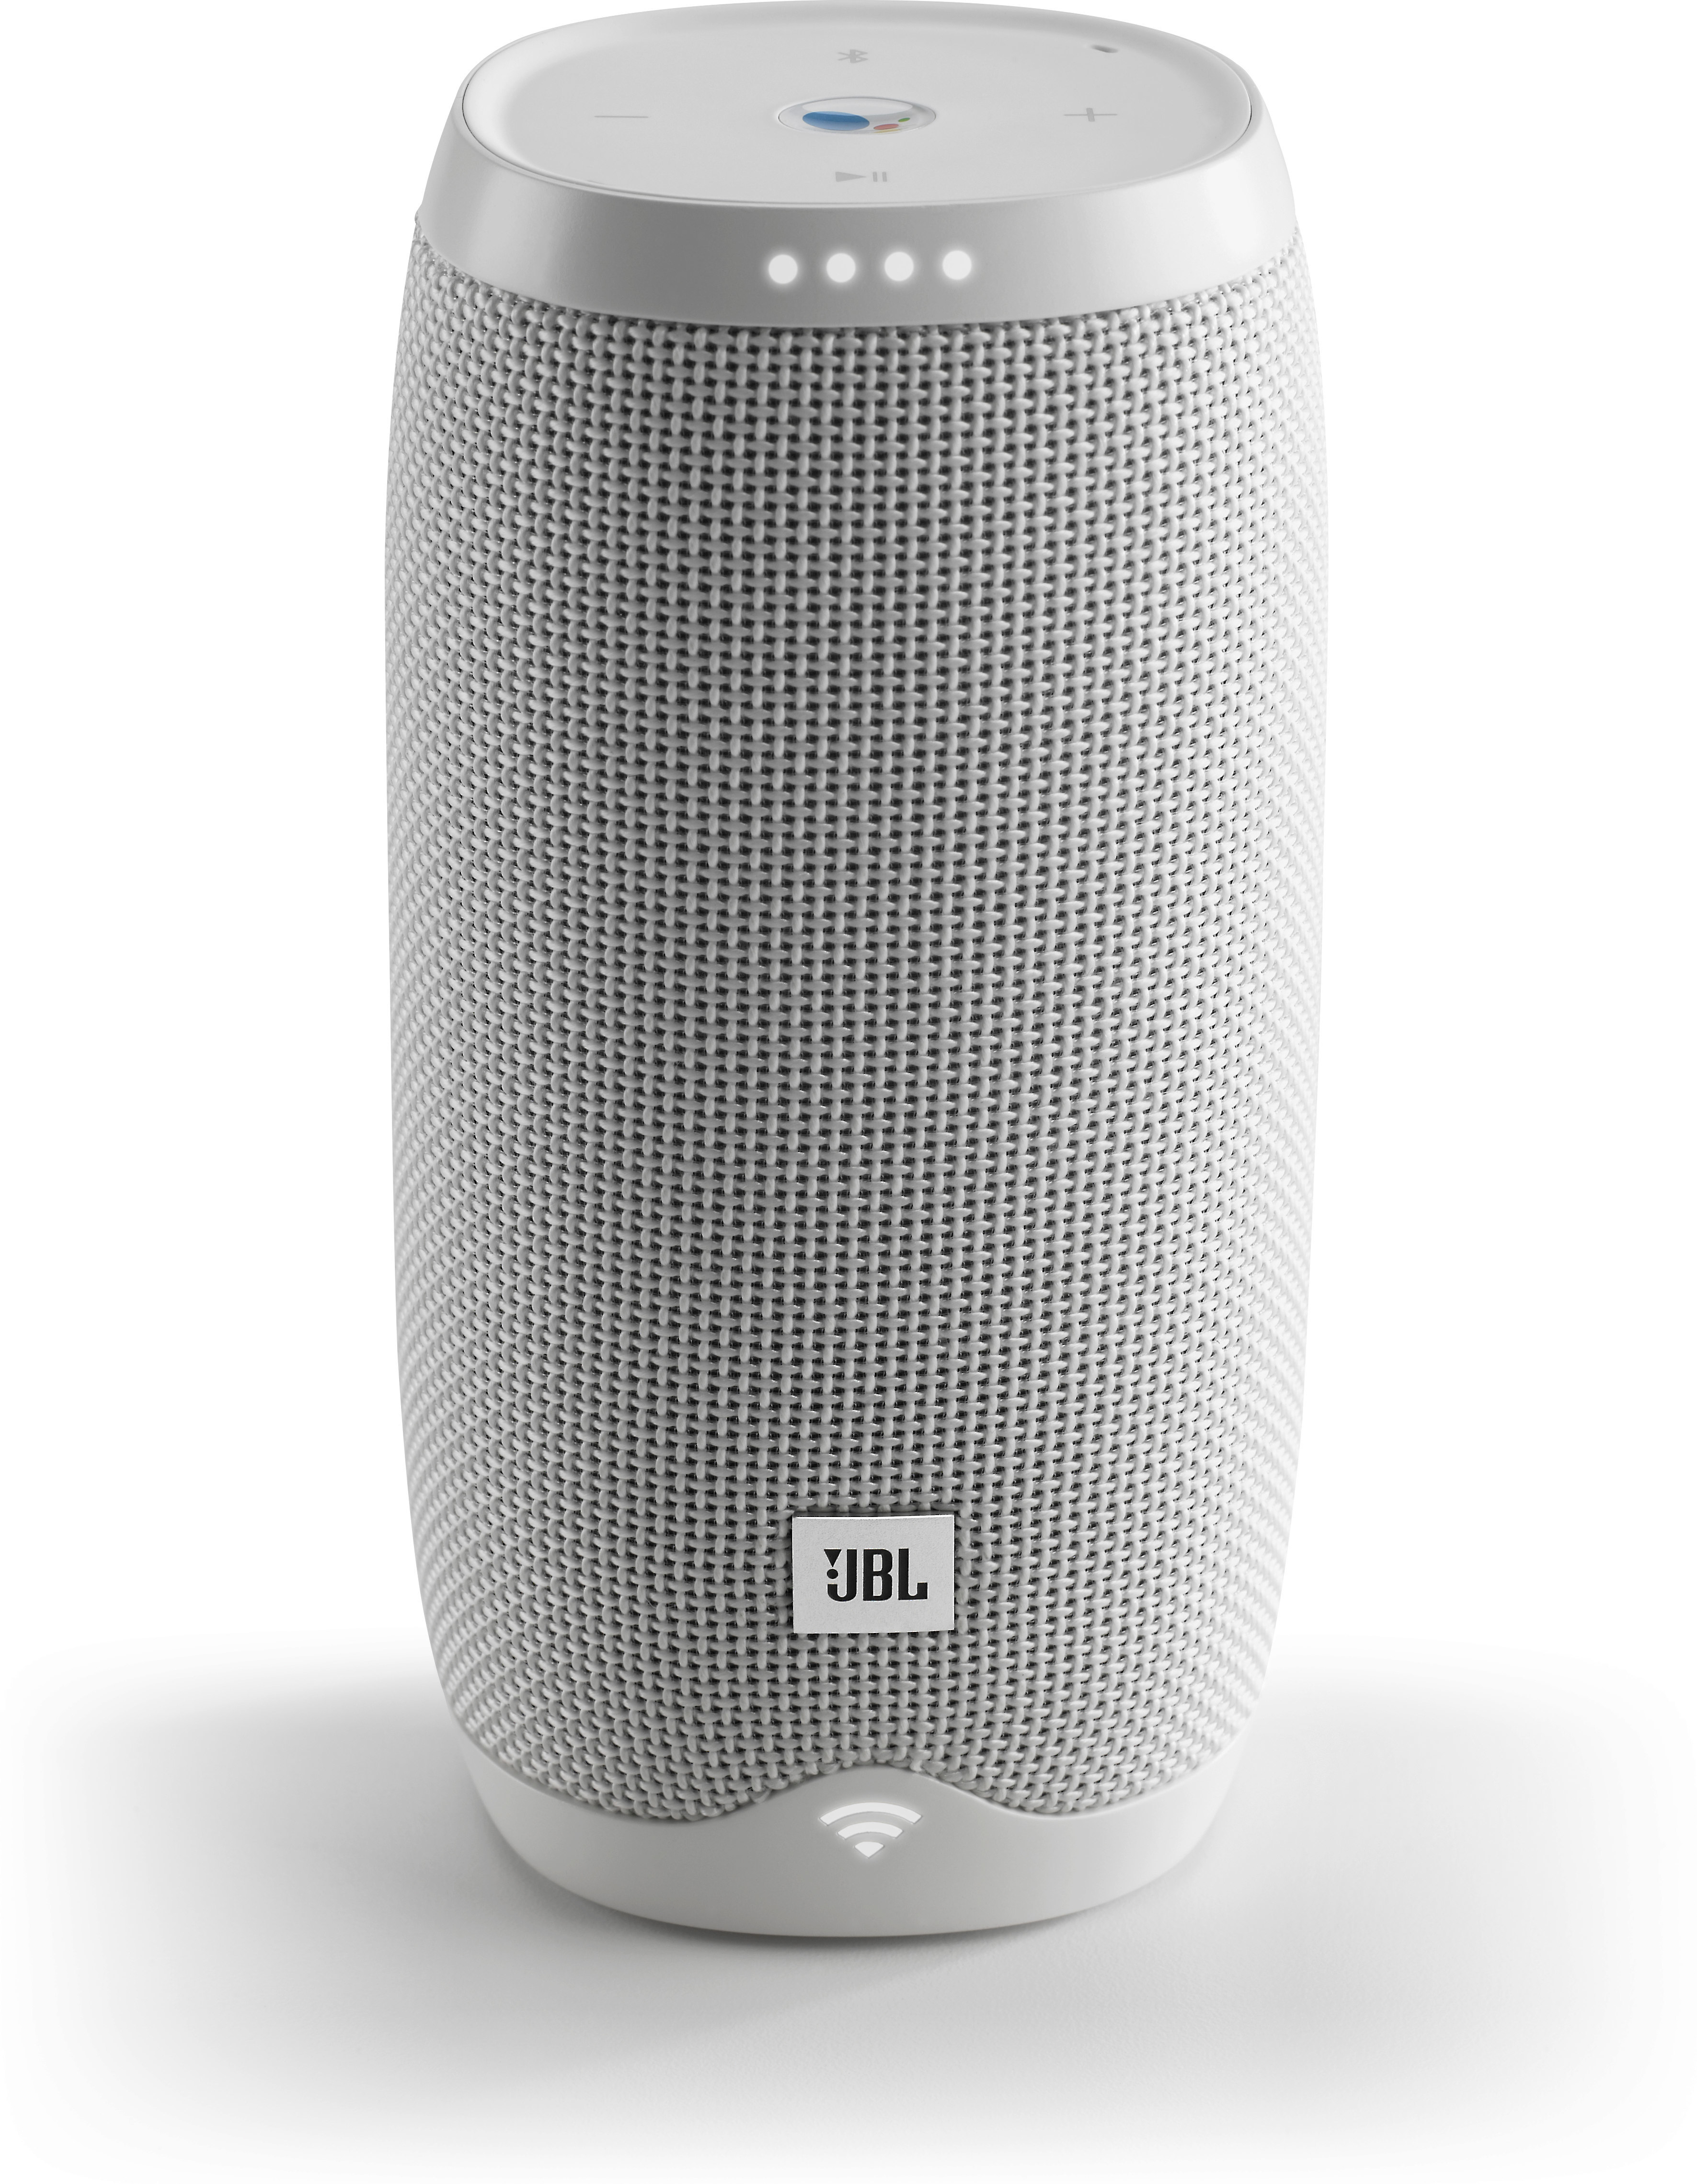 bc71333127ffc5 JBL LINK 10 (White) Waterproof portable speaker with Google Assistant,  Chromecast built-in, and Bluetooth® at Crutchfield